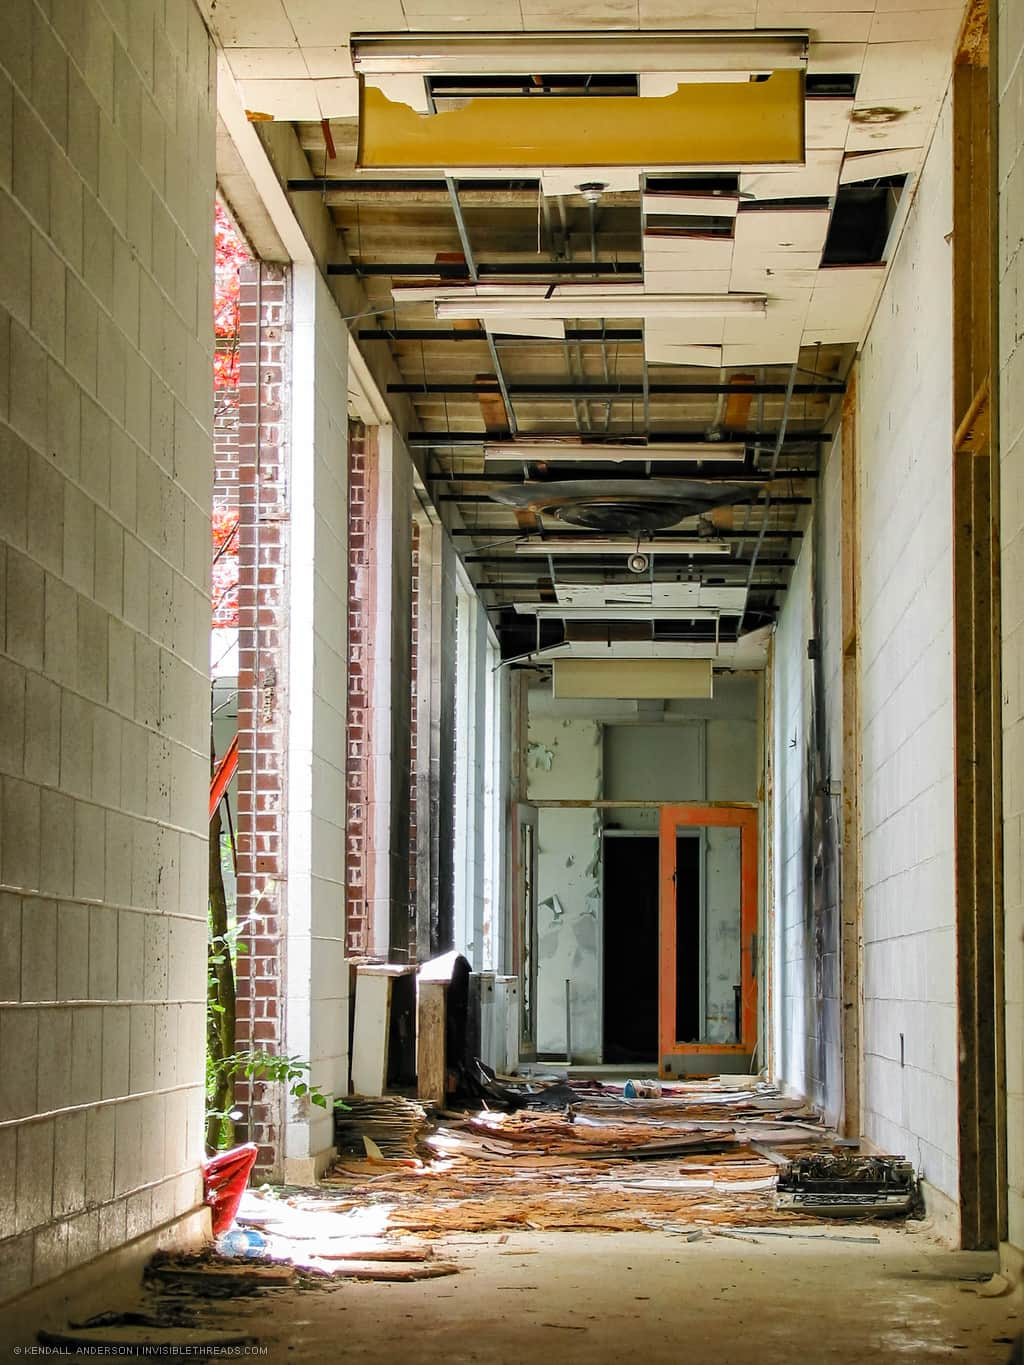 A long hallway filled with debris is brightly lit. All windows to an interior courtyard are broken, and the exit doors are missing all their glass.